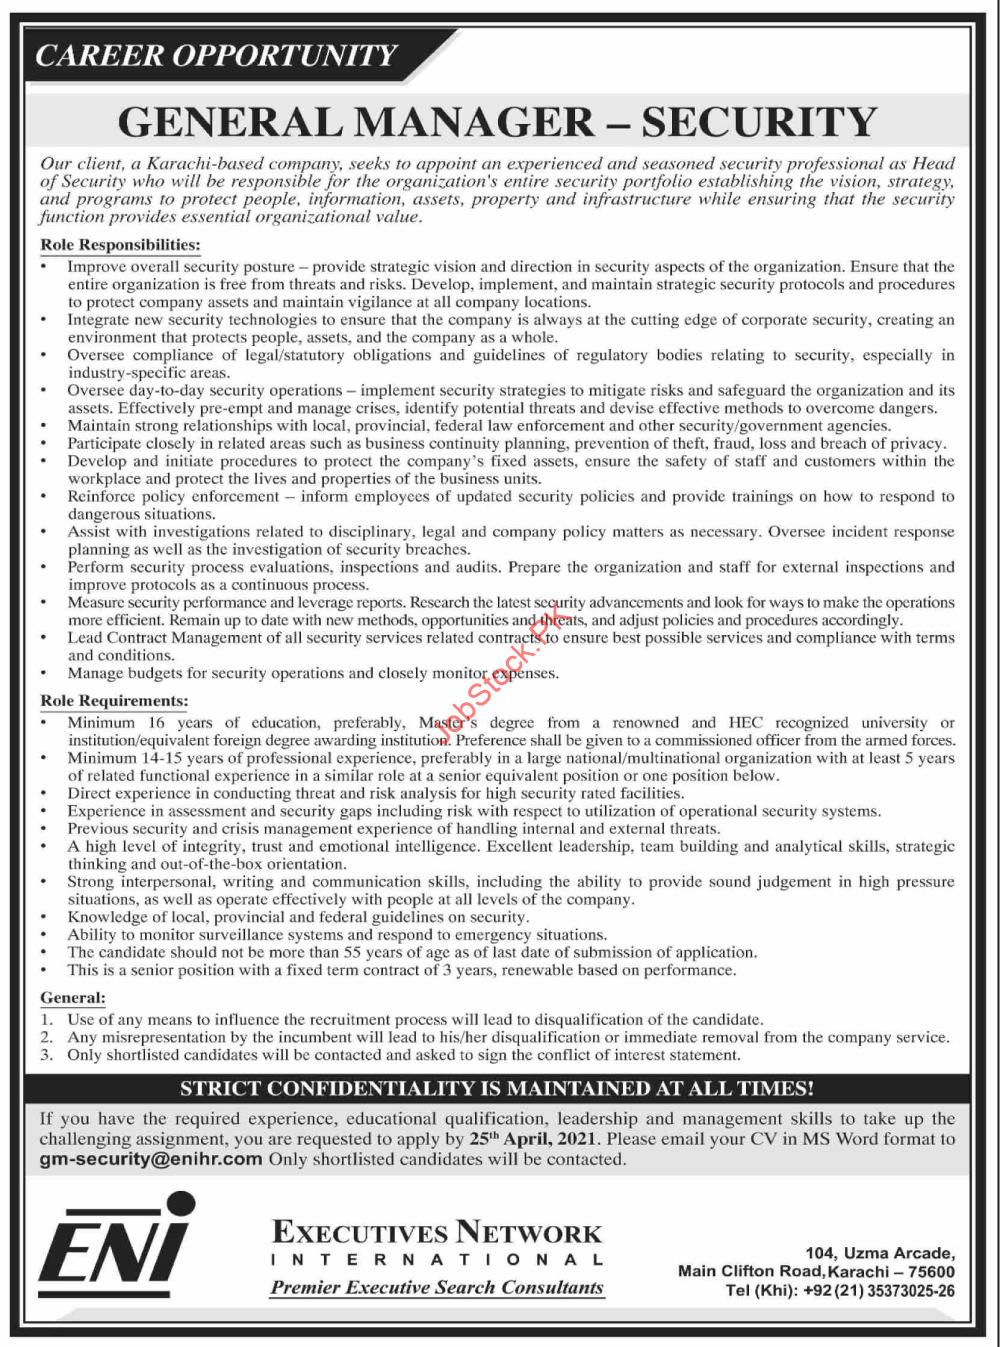 General Manager Jobs In Karachi Latest April 2021 Advertisement